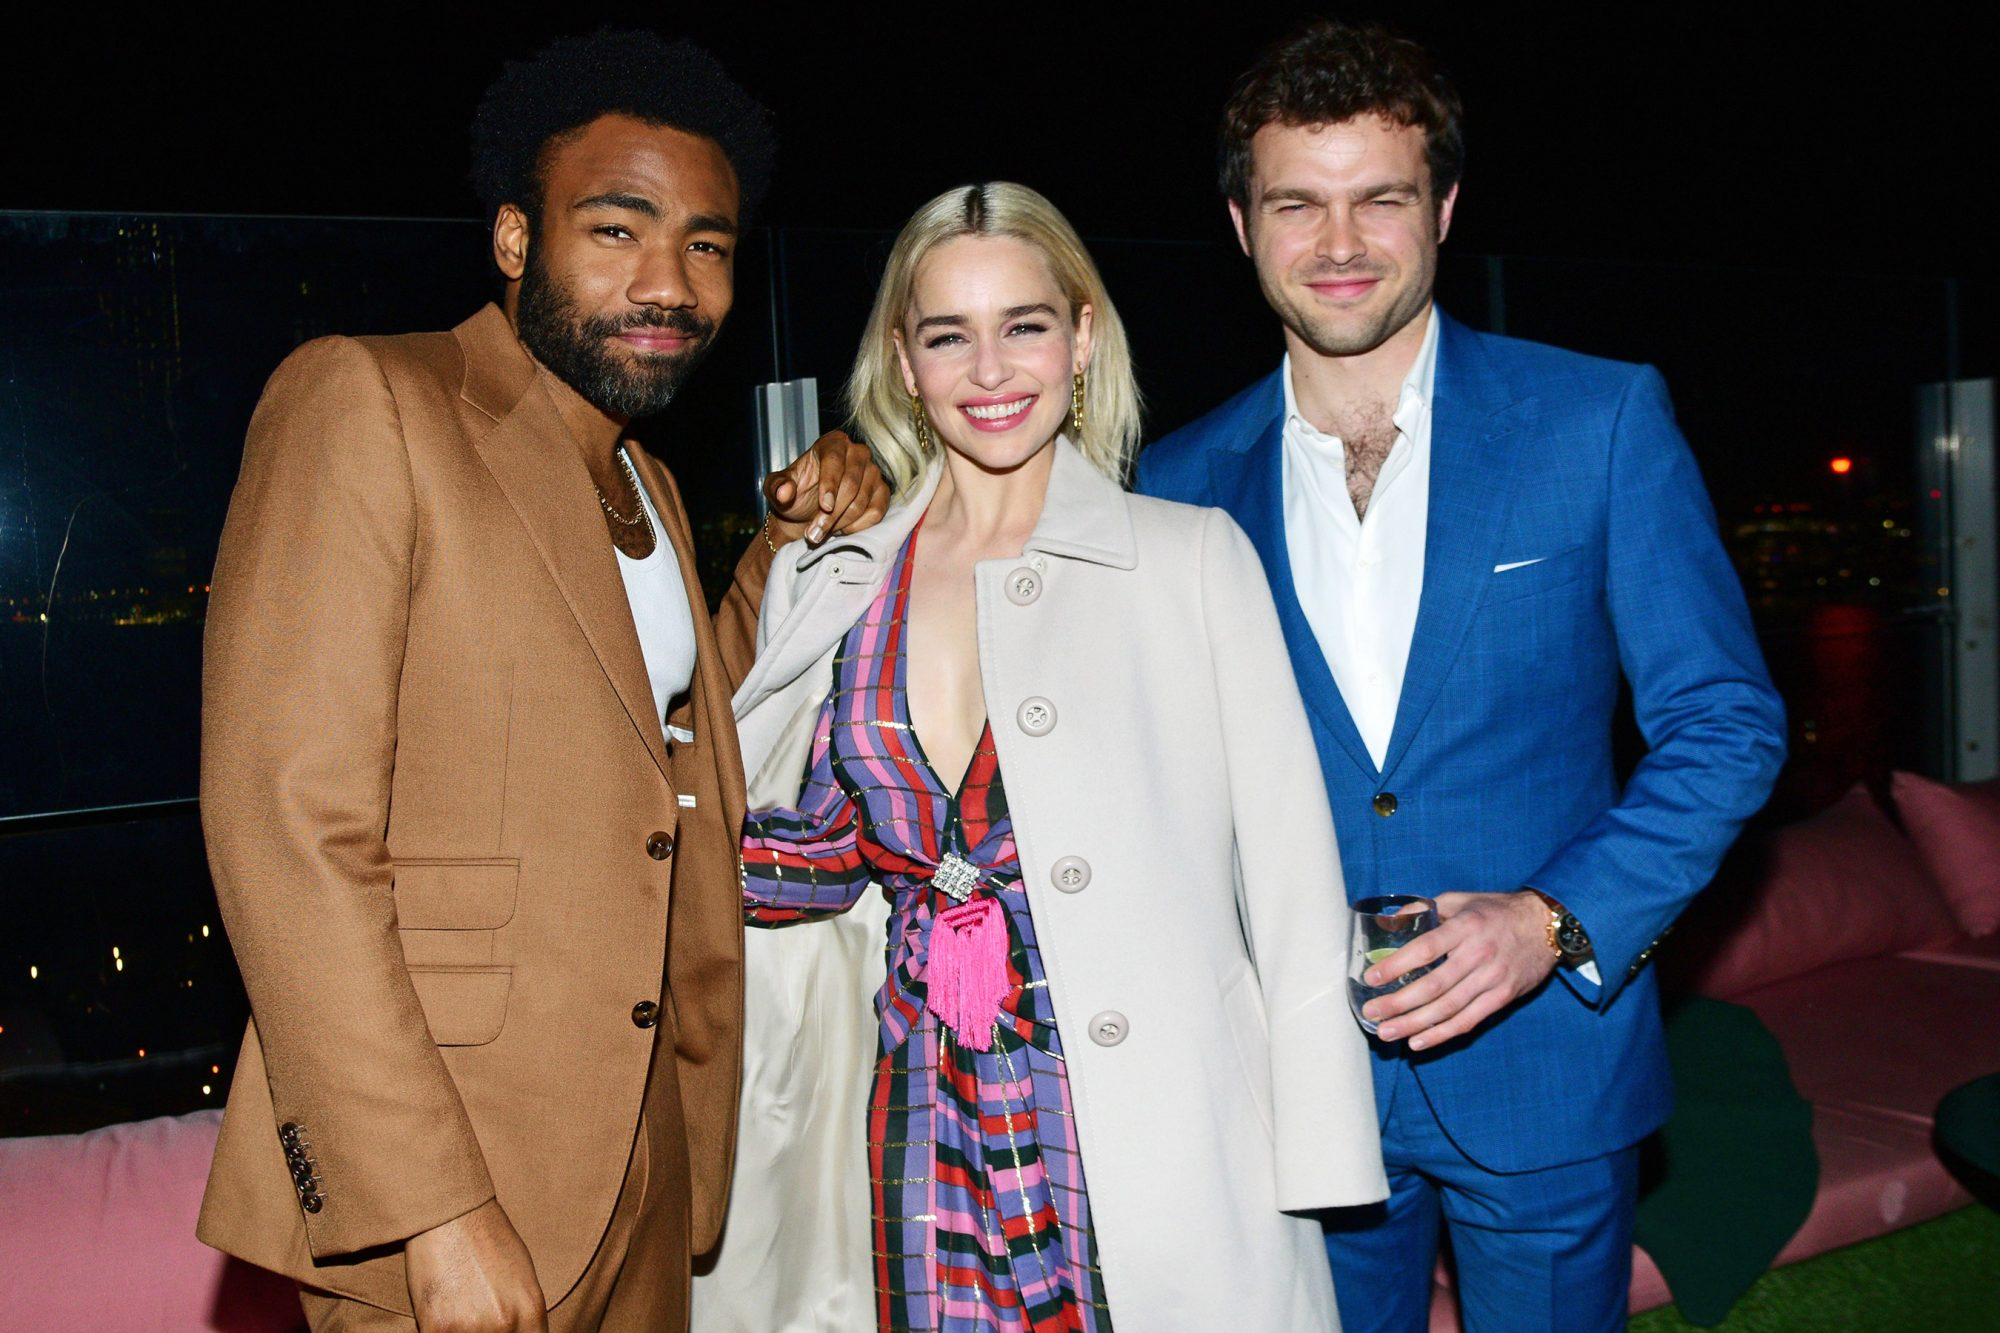 'Solo: A Star Wars Story' film premiere, After Party, New York, USA - 21 May 2018